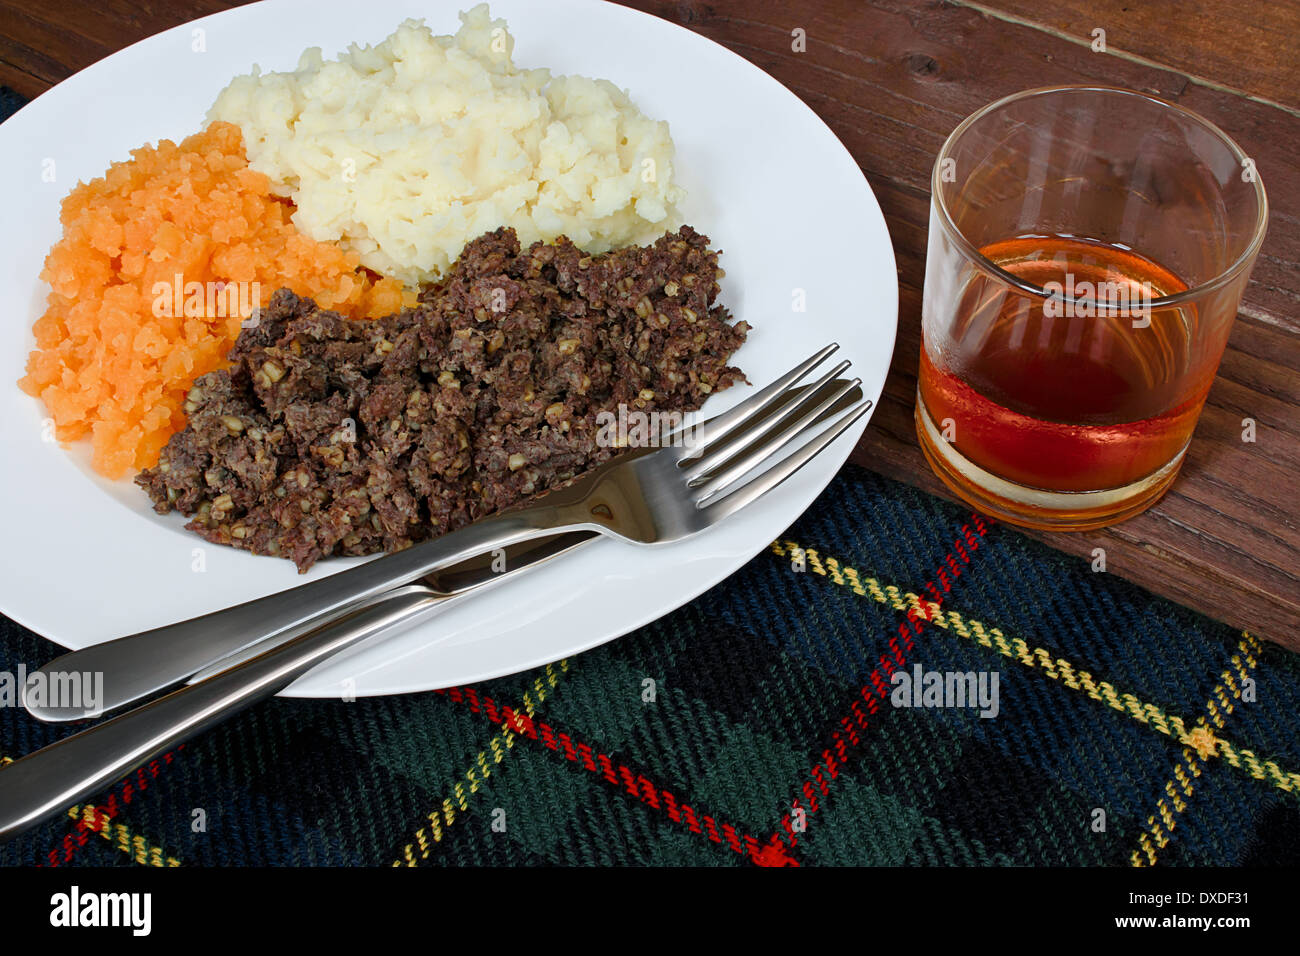 Traditional Scottish haggis, neeps and tatties with whisky also known as a burns supper. Stock Photo